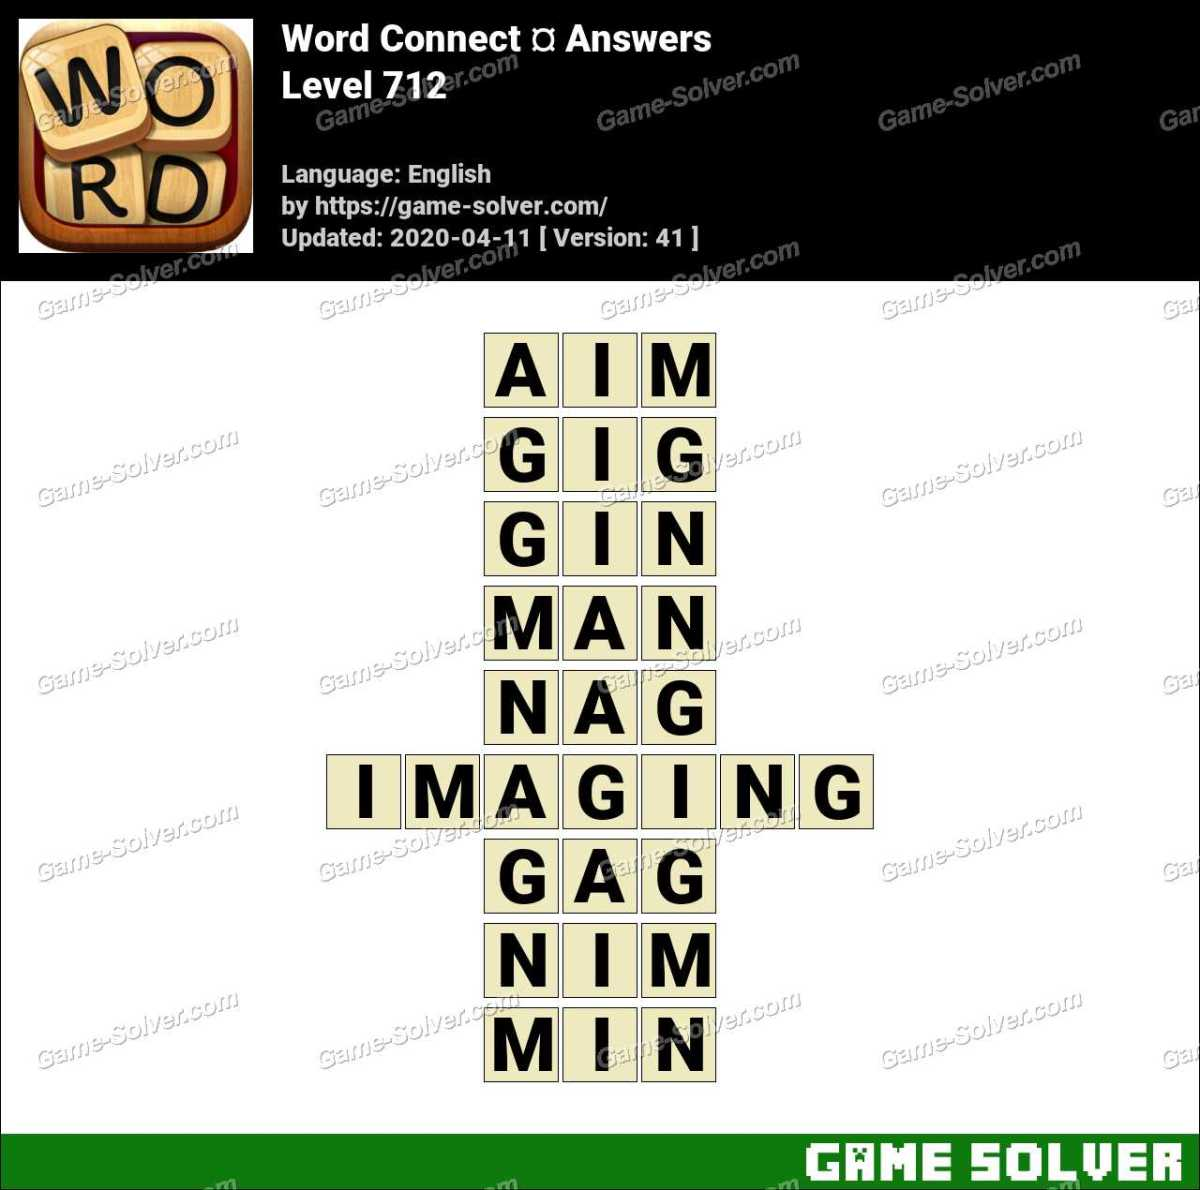 Word Connect Level 712 Answers